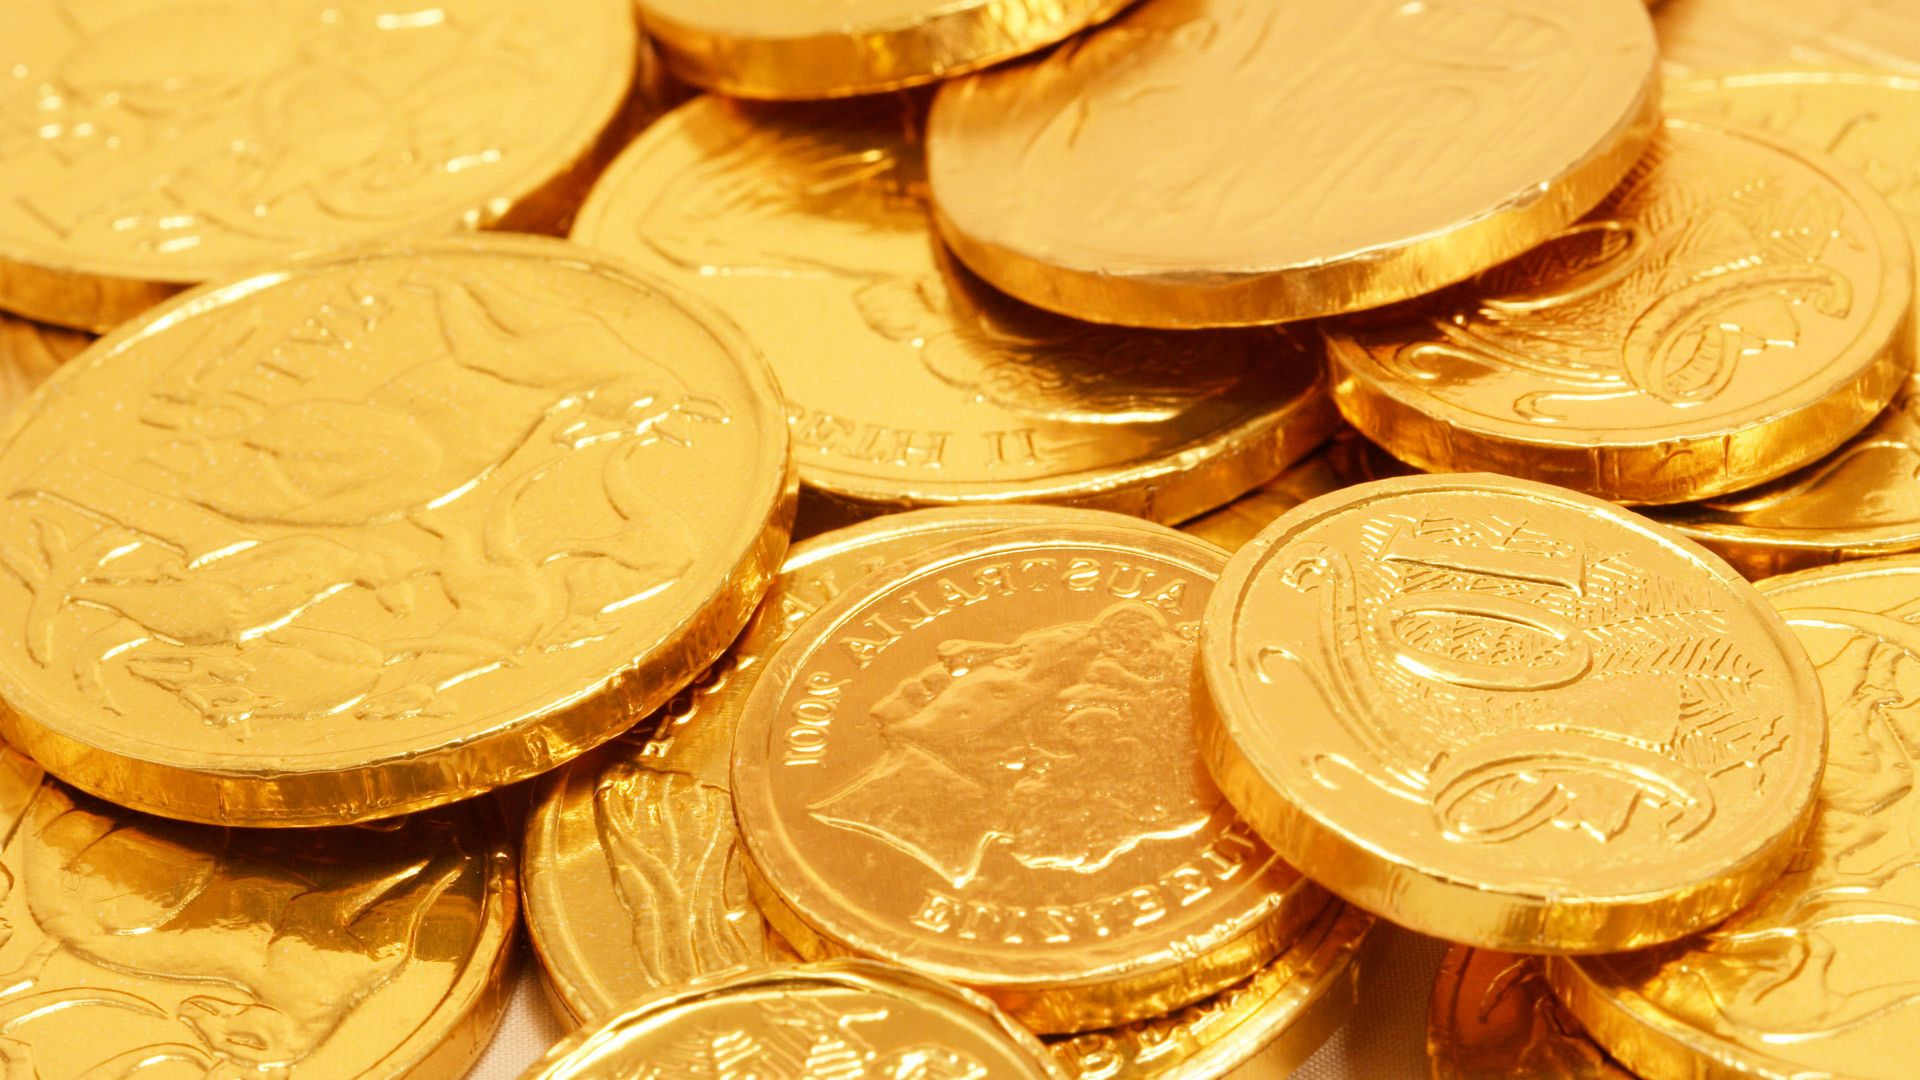 Gold Coin Wallpapers   Top Gold Coin Backgrounds 1920x1080